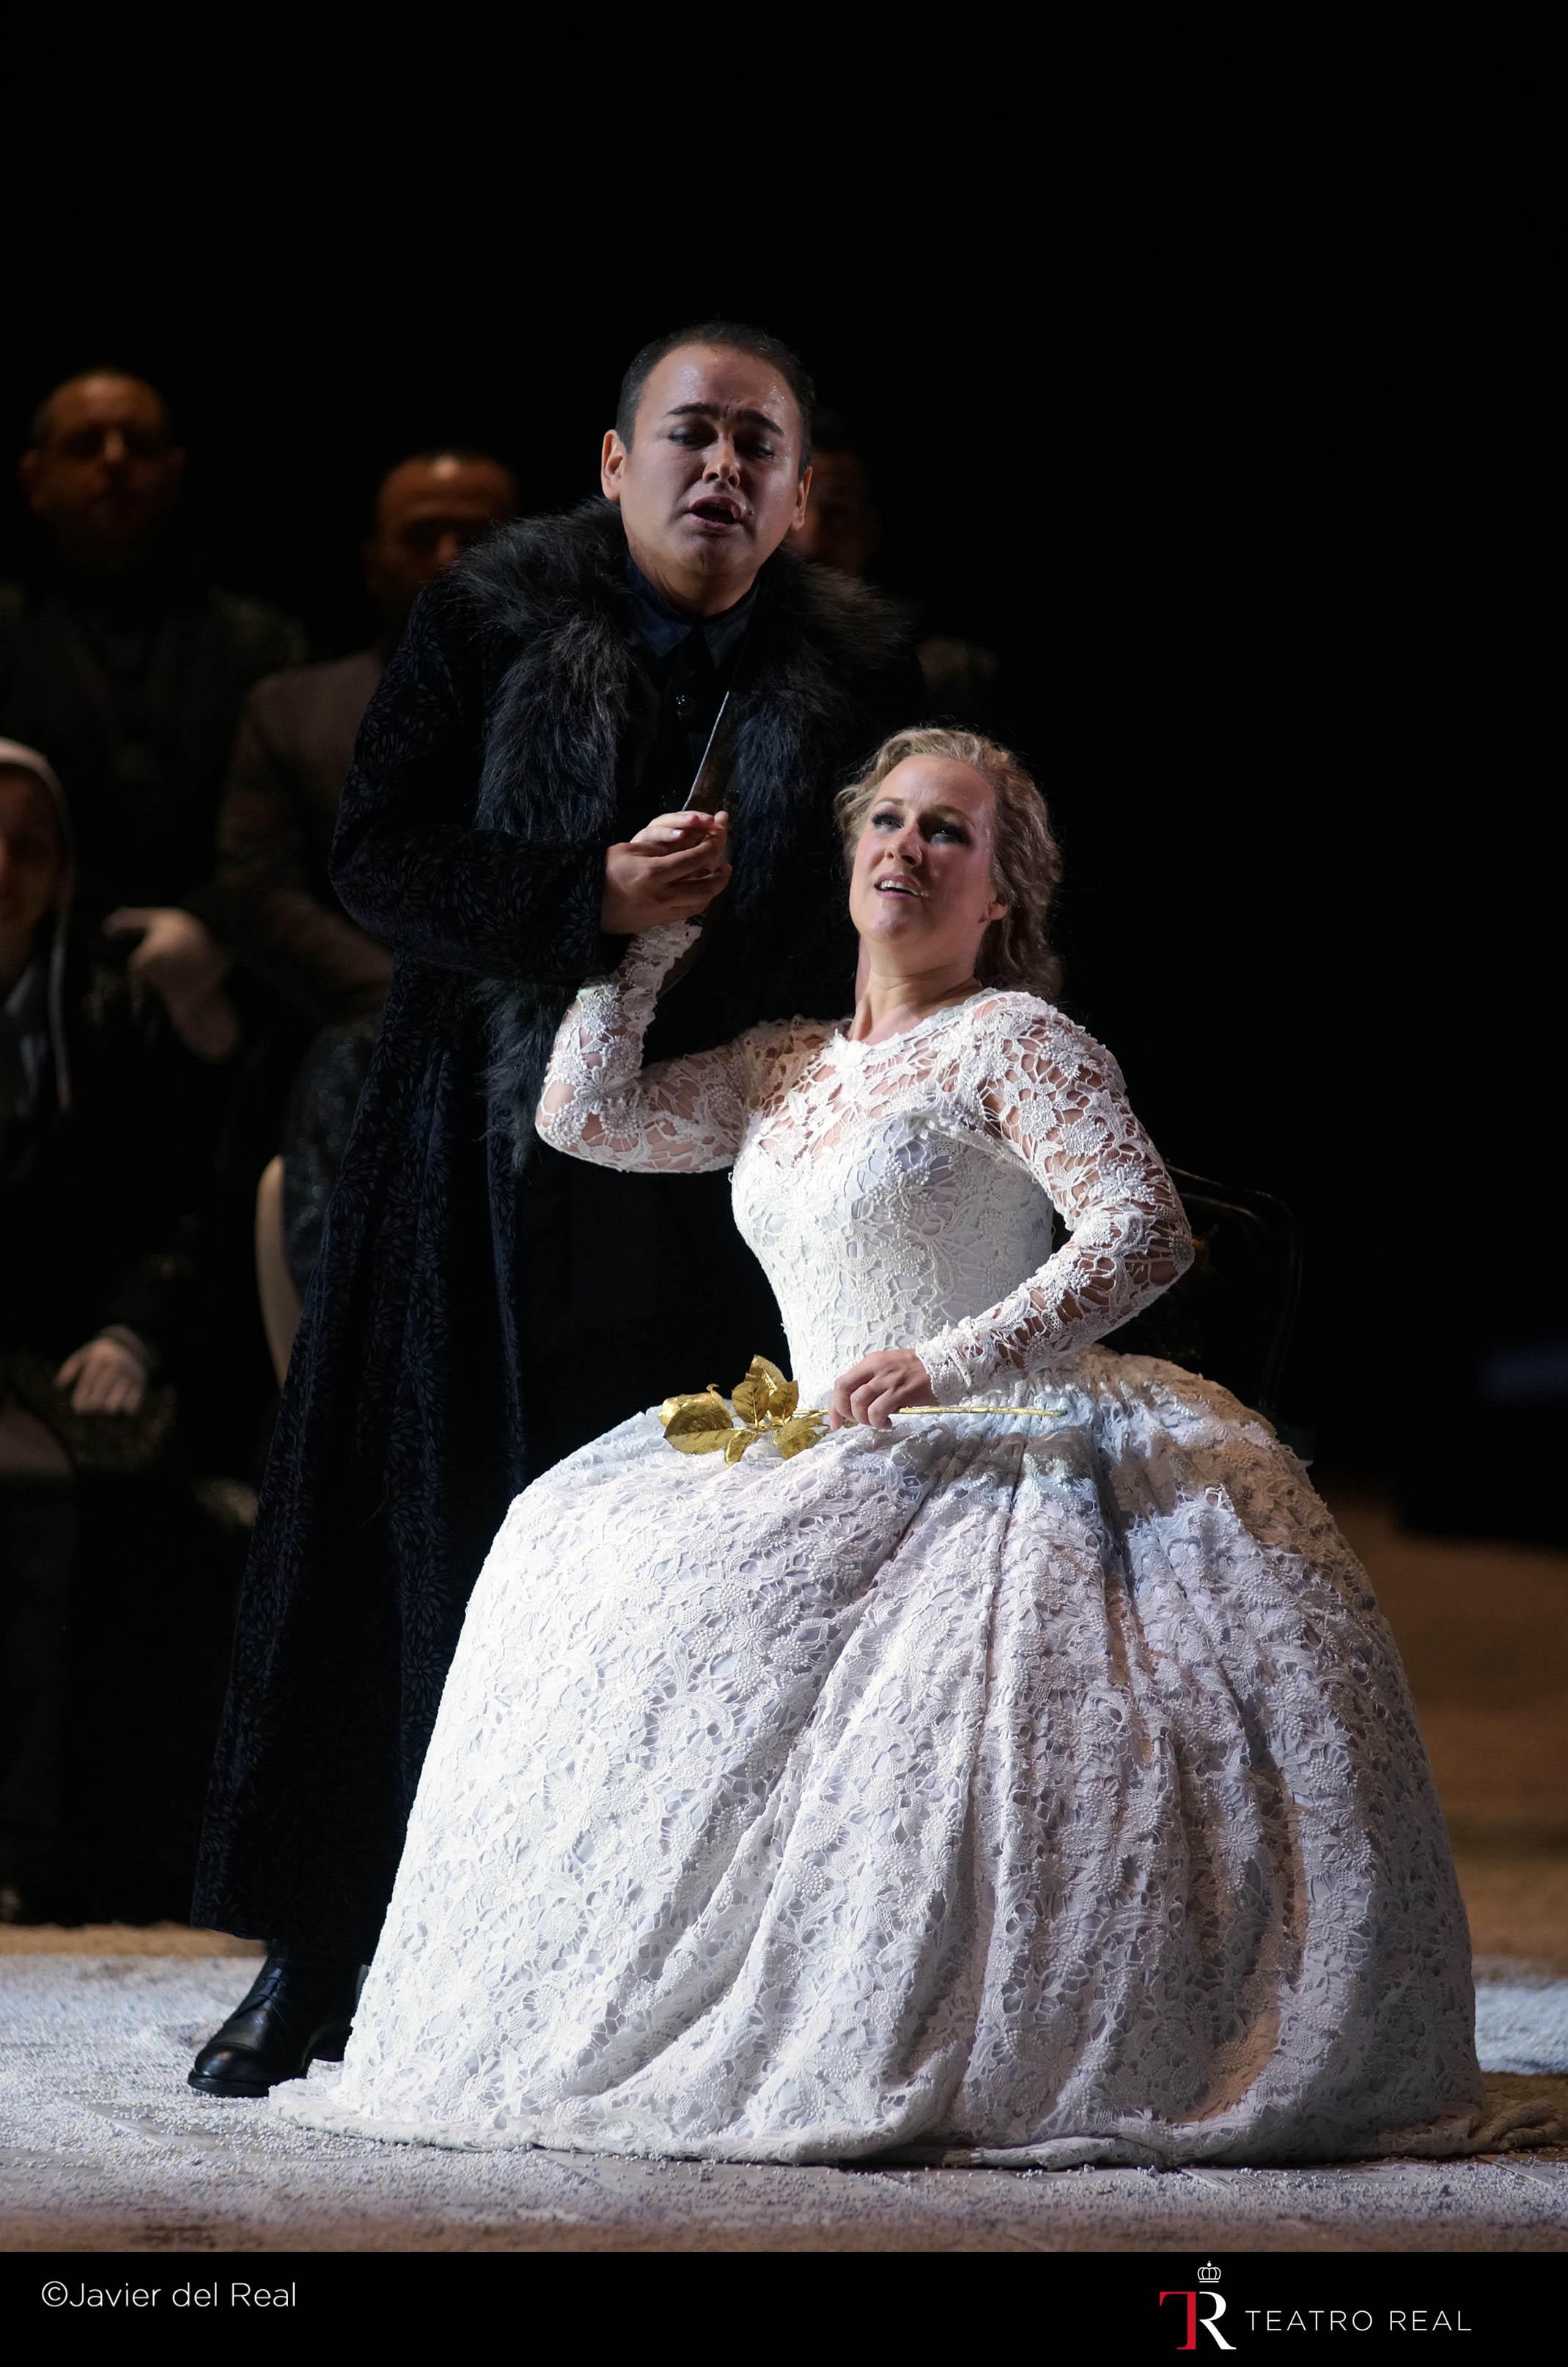 The Alhambra joins in the 200th anniversary celebrations for the Teatro Real with a live broadcast of the Opera 'I puritani'